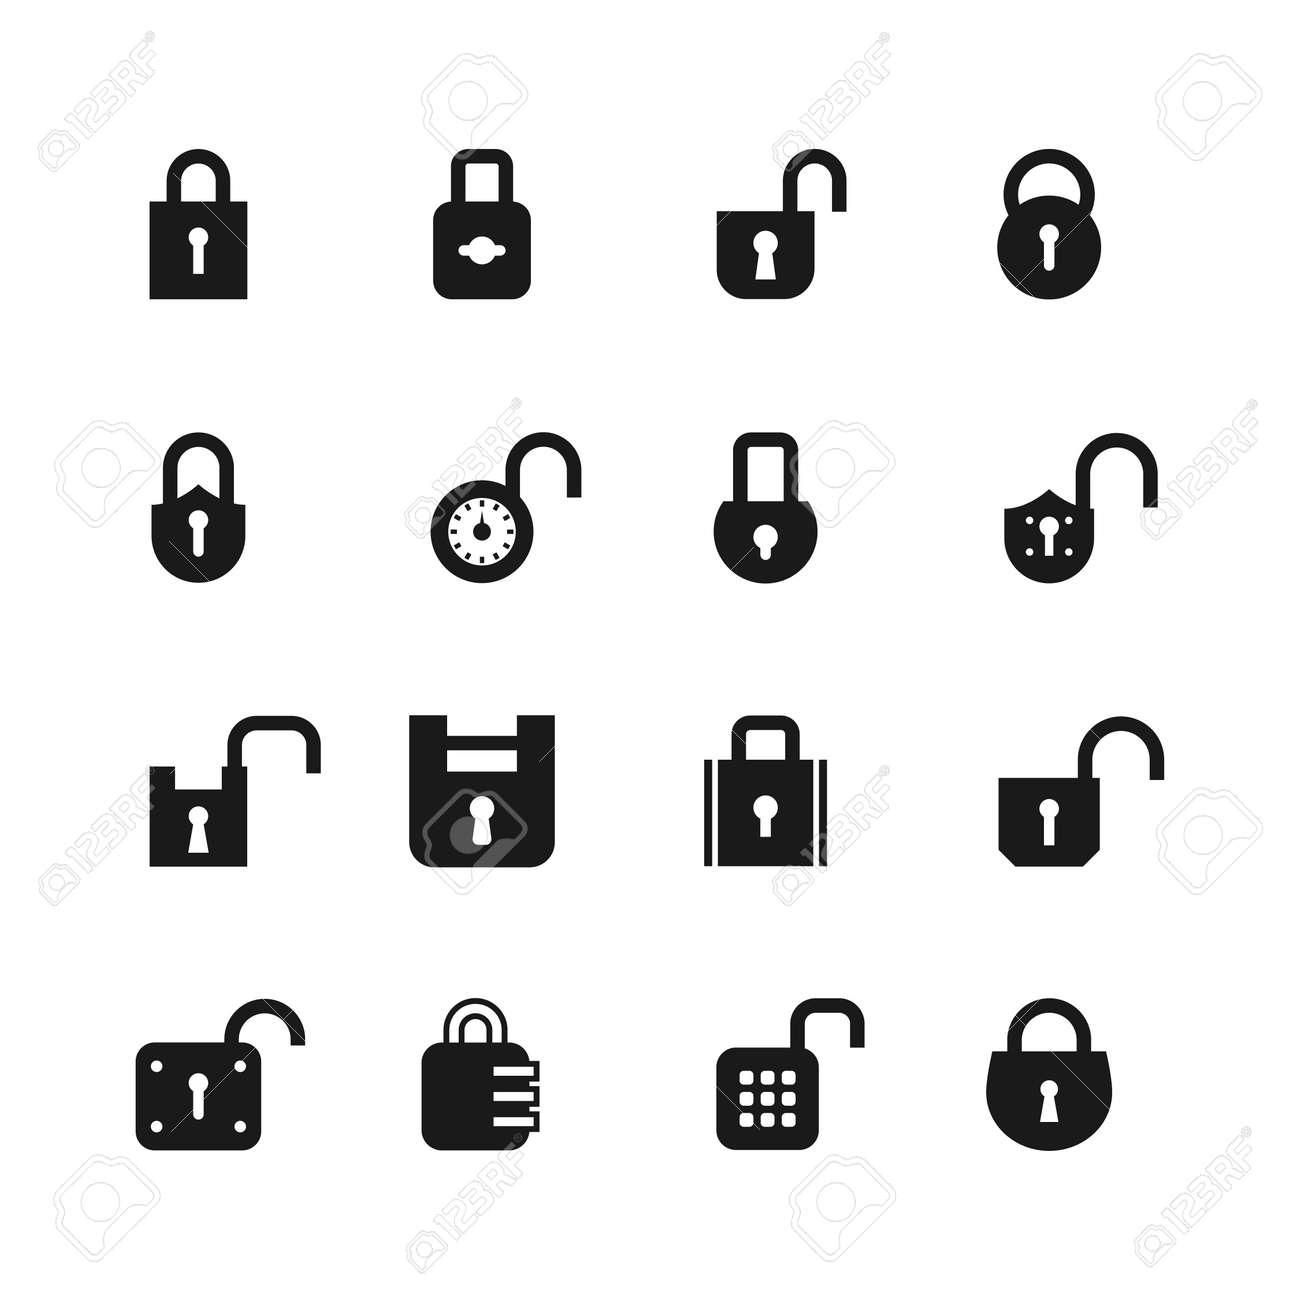 Open and closed padlock icons. Lock, security and password vector isolated symbols. Open lock, safety protection illustration - 168058512